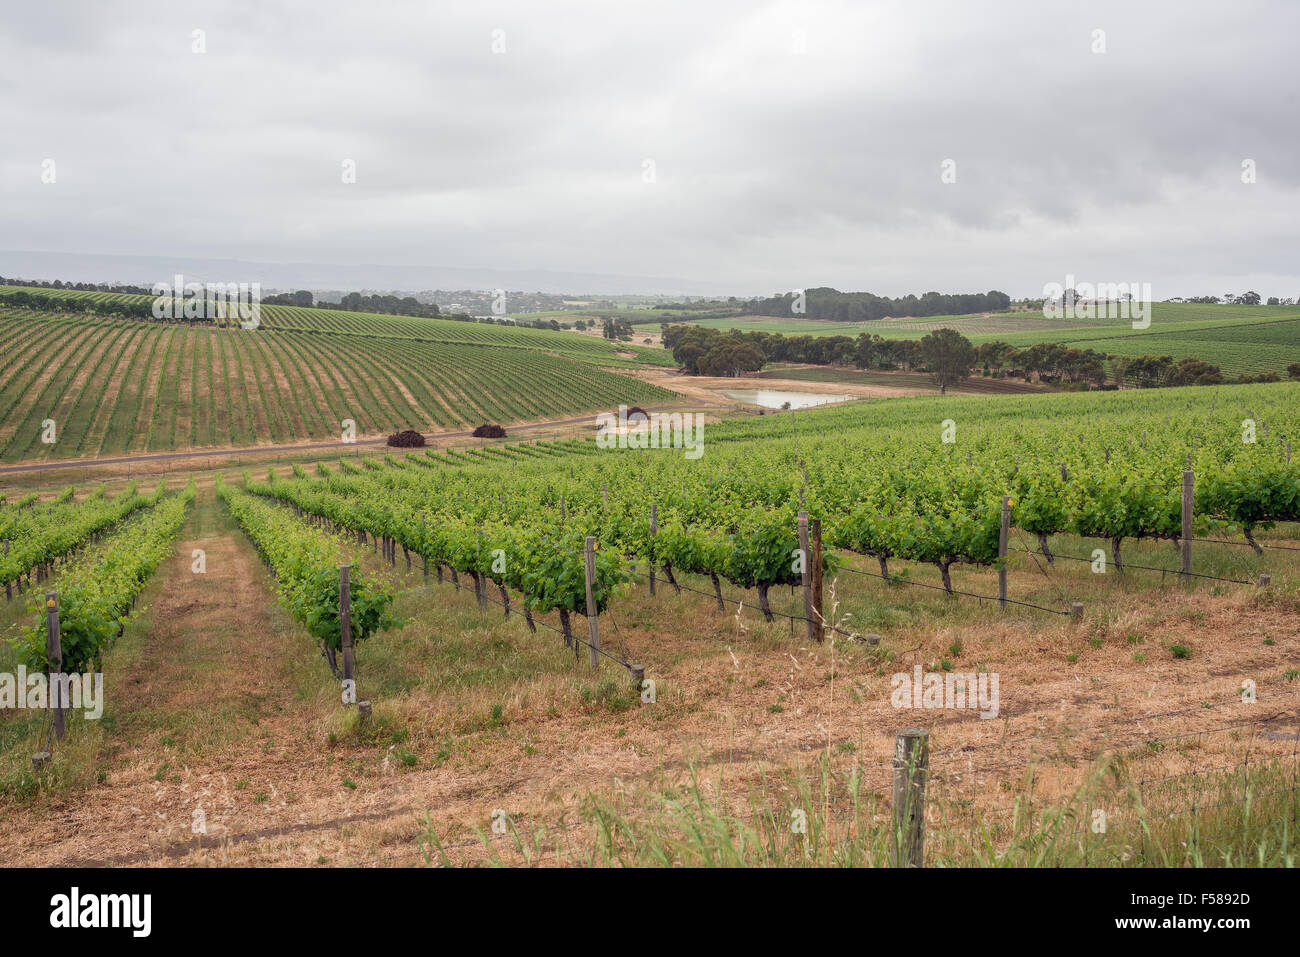 The beautiful South Australian town of McLaren Vale in the Southern Vales wine growing region - Stock Image